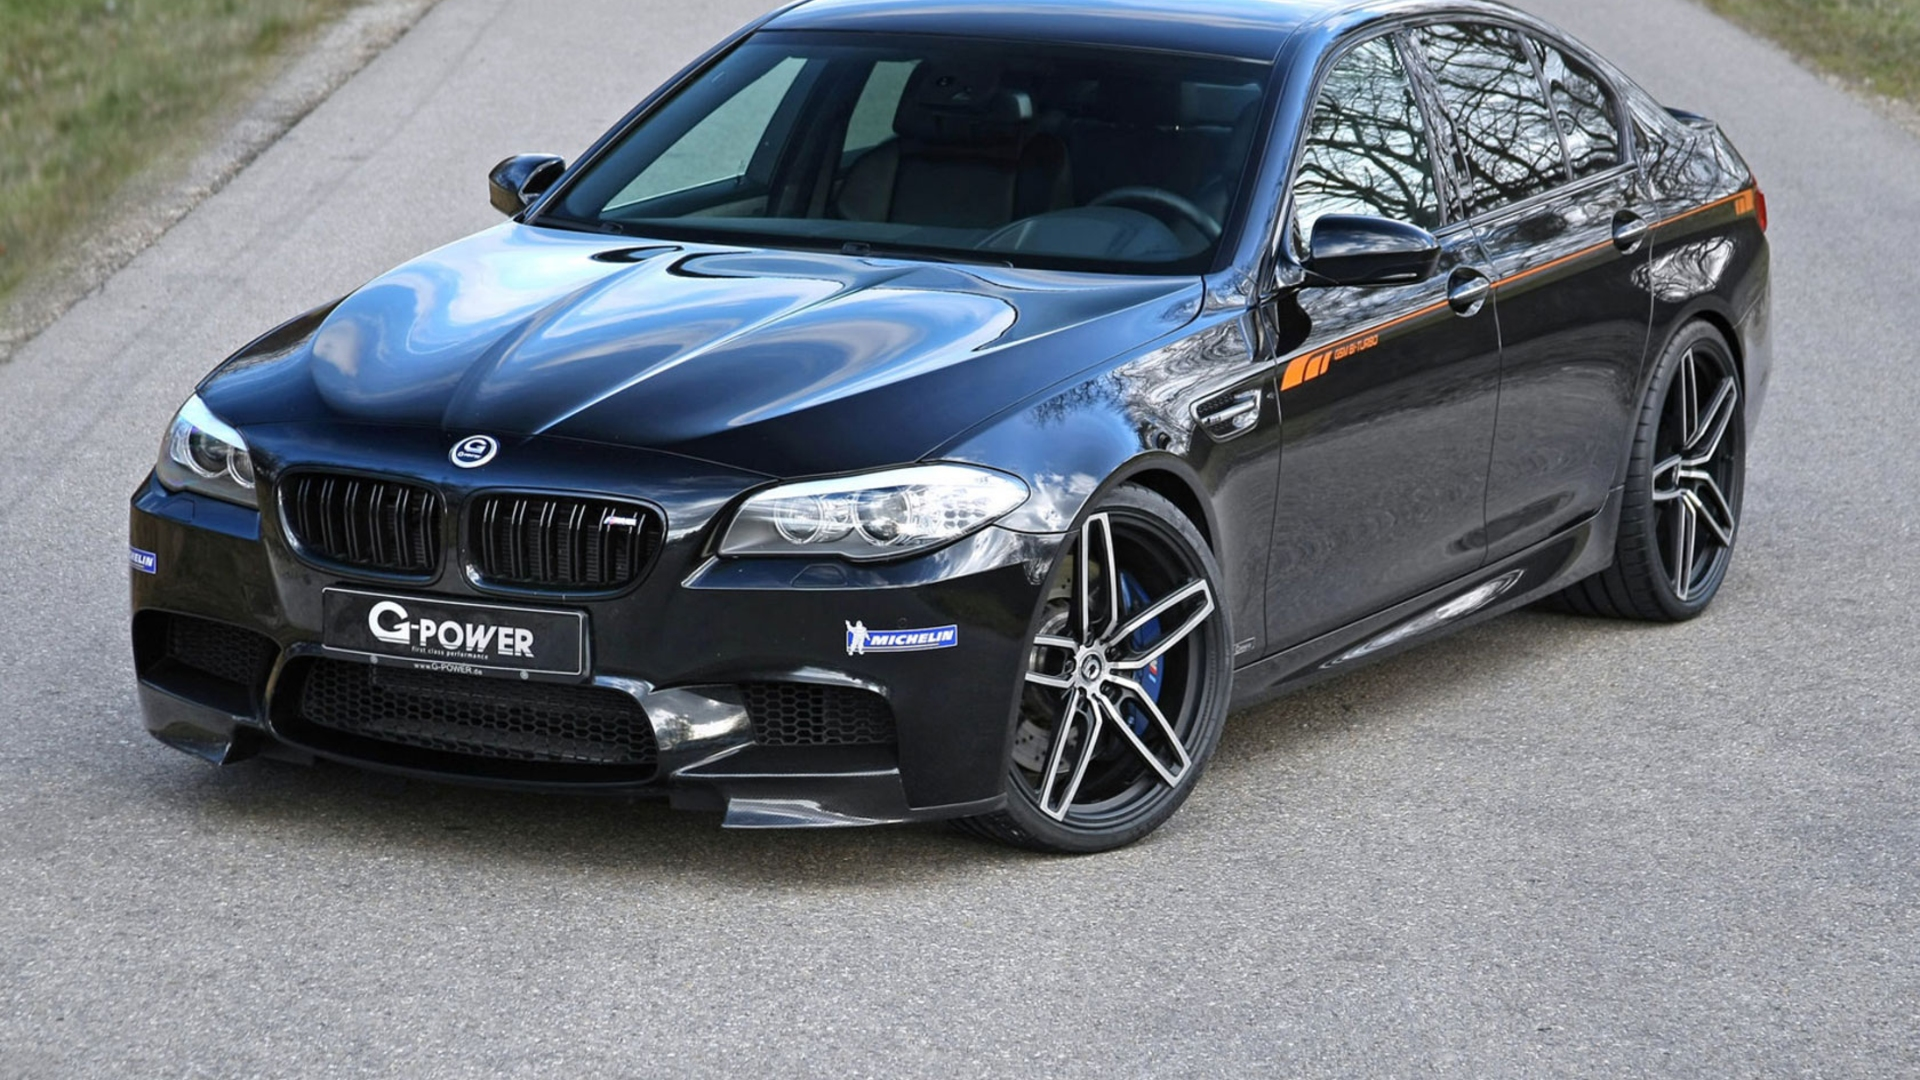 g-power-bmw-m5-tuning-740-ps-f10-07